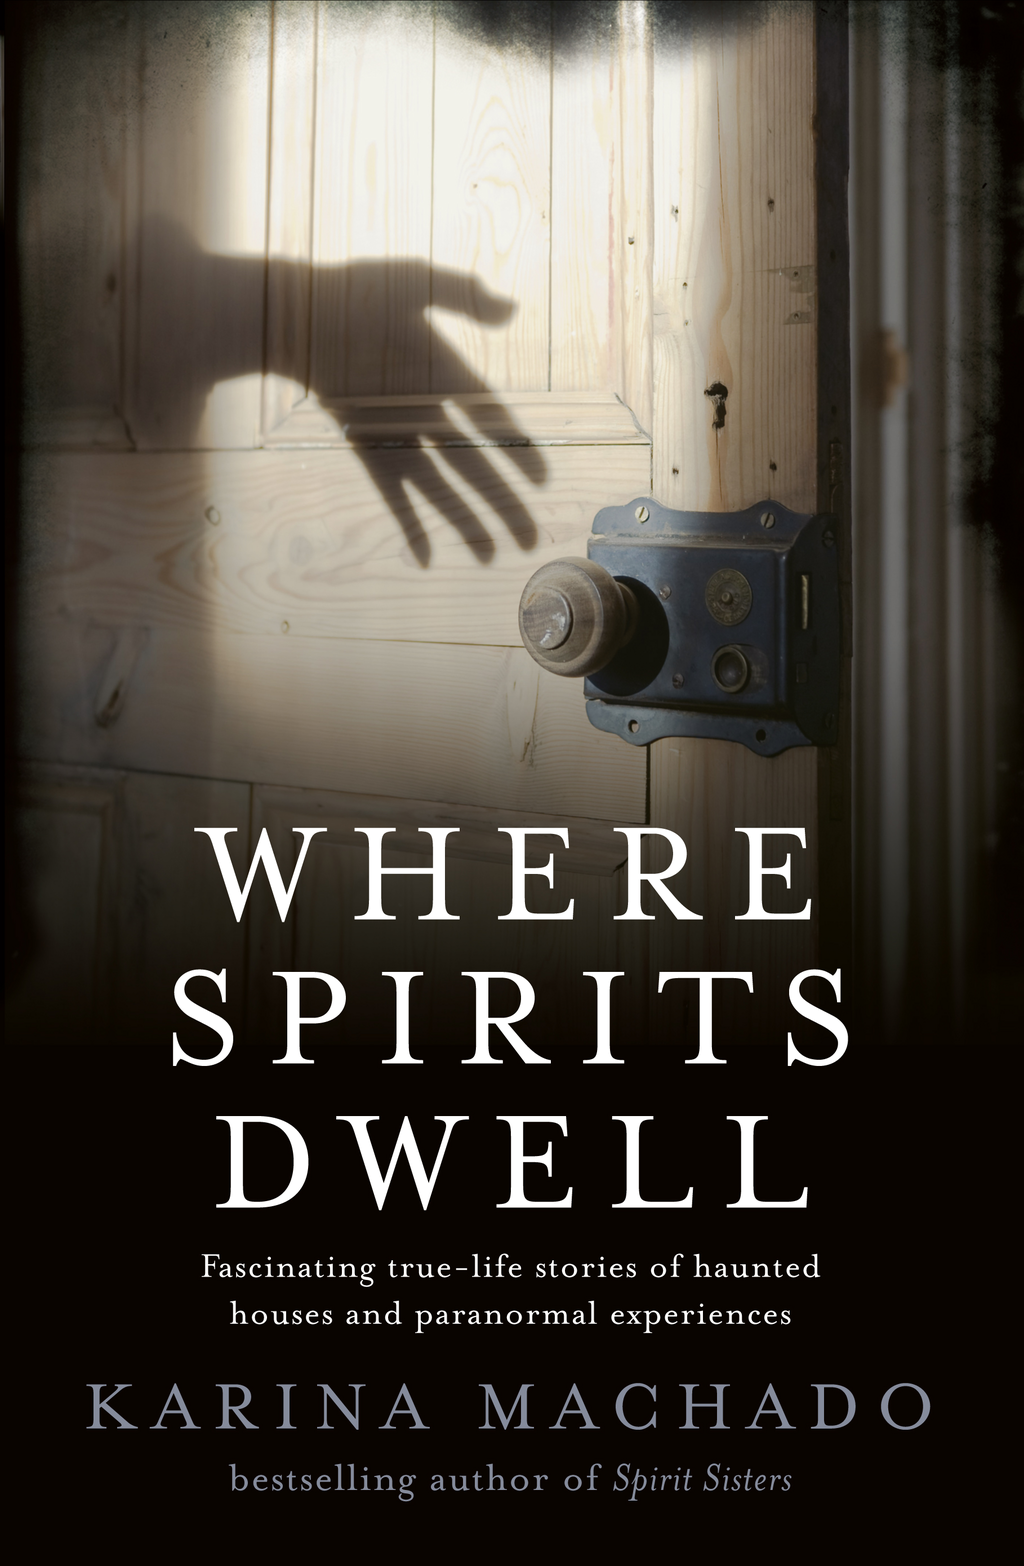 Where Spirits Dwell Fascinating true life stories of haunted houses and other paranormal experiences